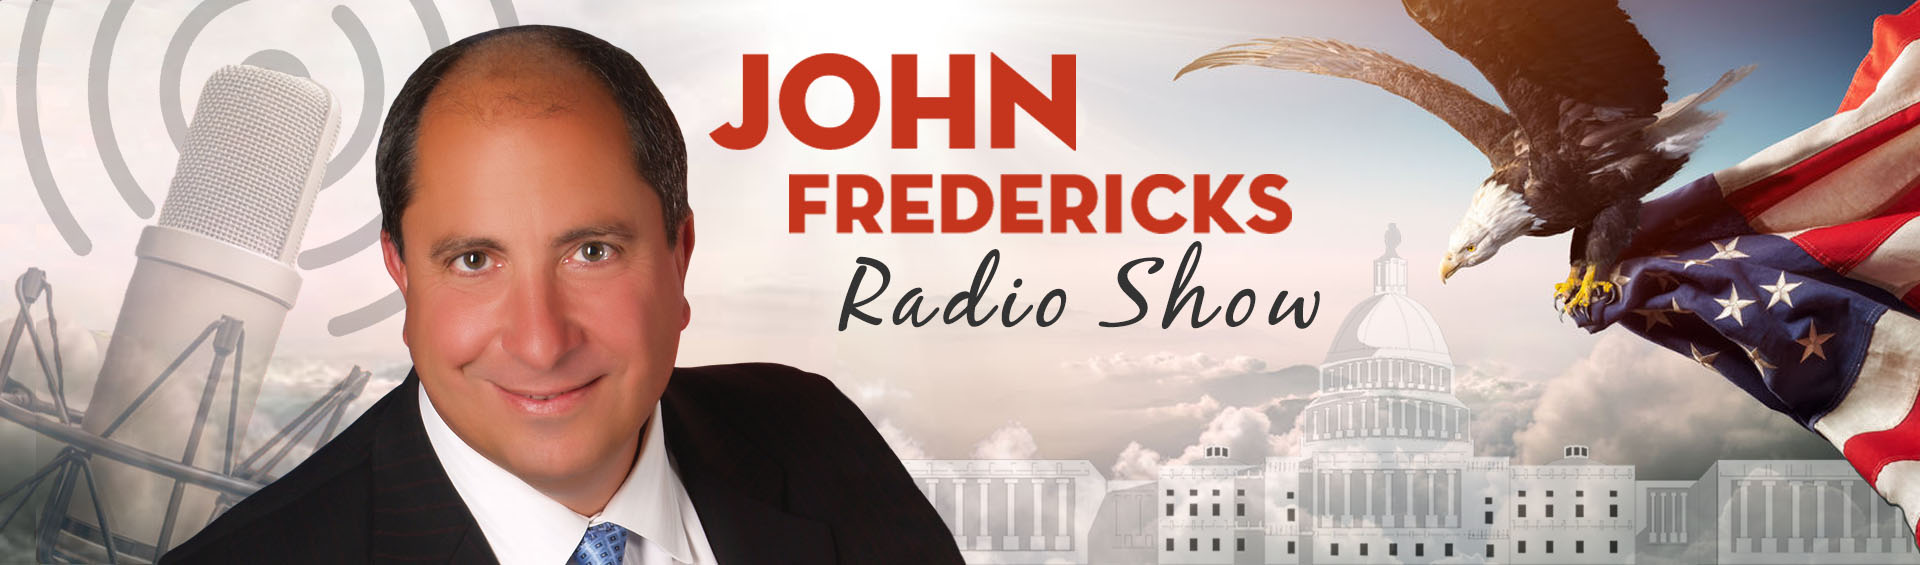 John Fredericks Radio Show - conservative talk radio - patriotic banner